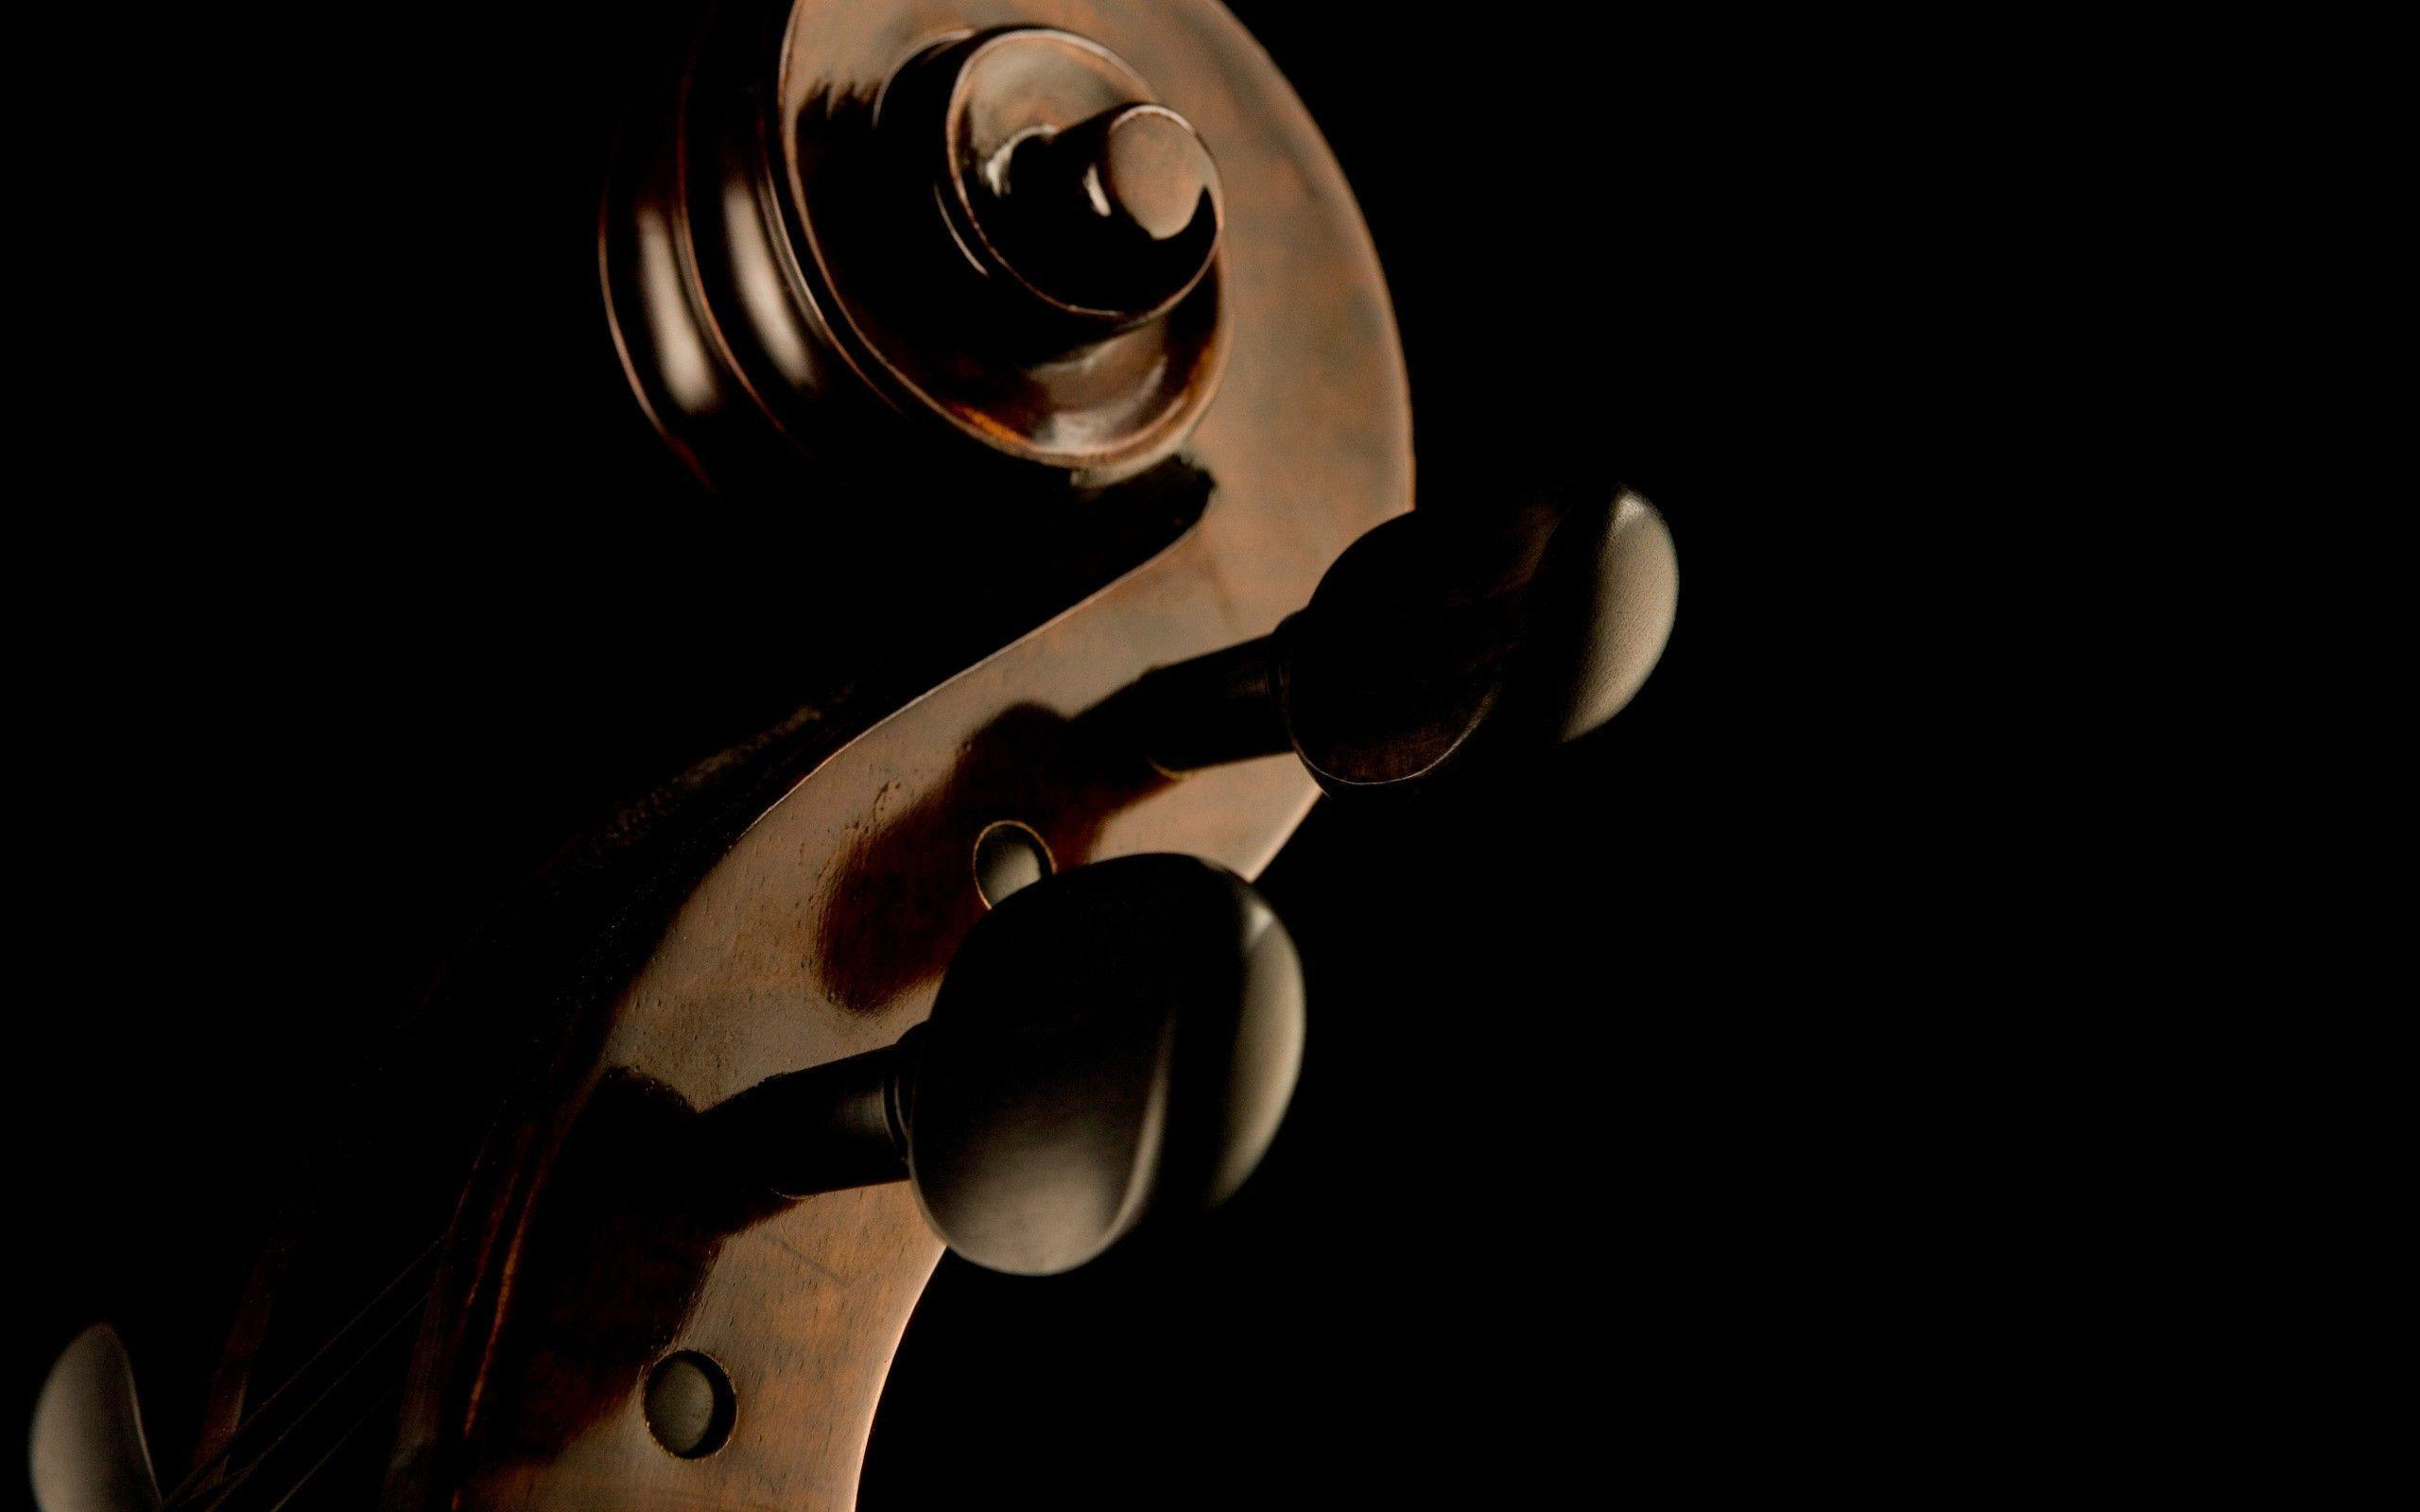 Violin Computer Wallpapers, Desktop Backgrounds 2560x1600 Id: 118794